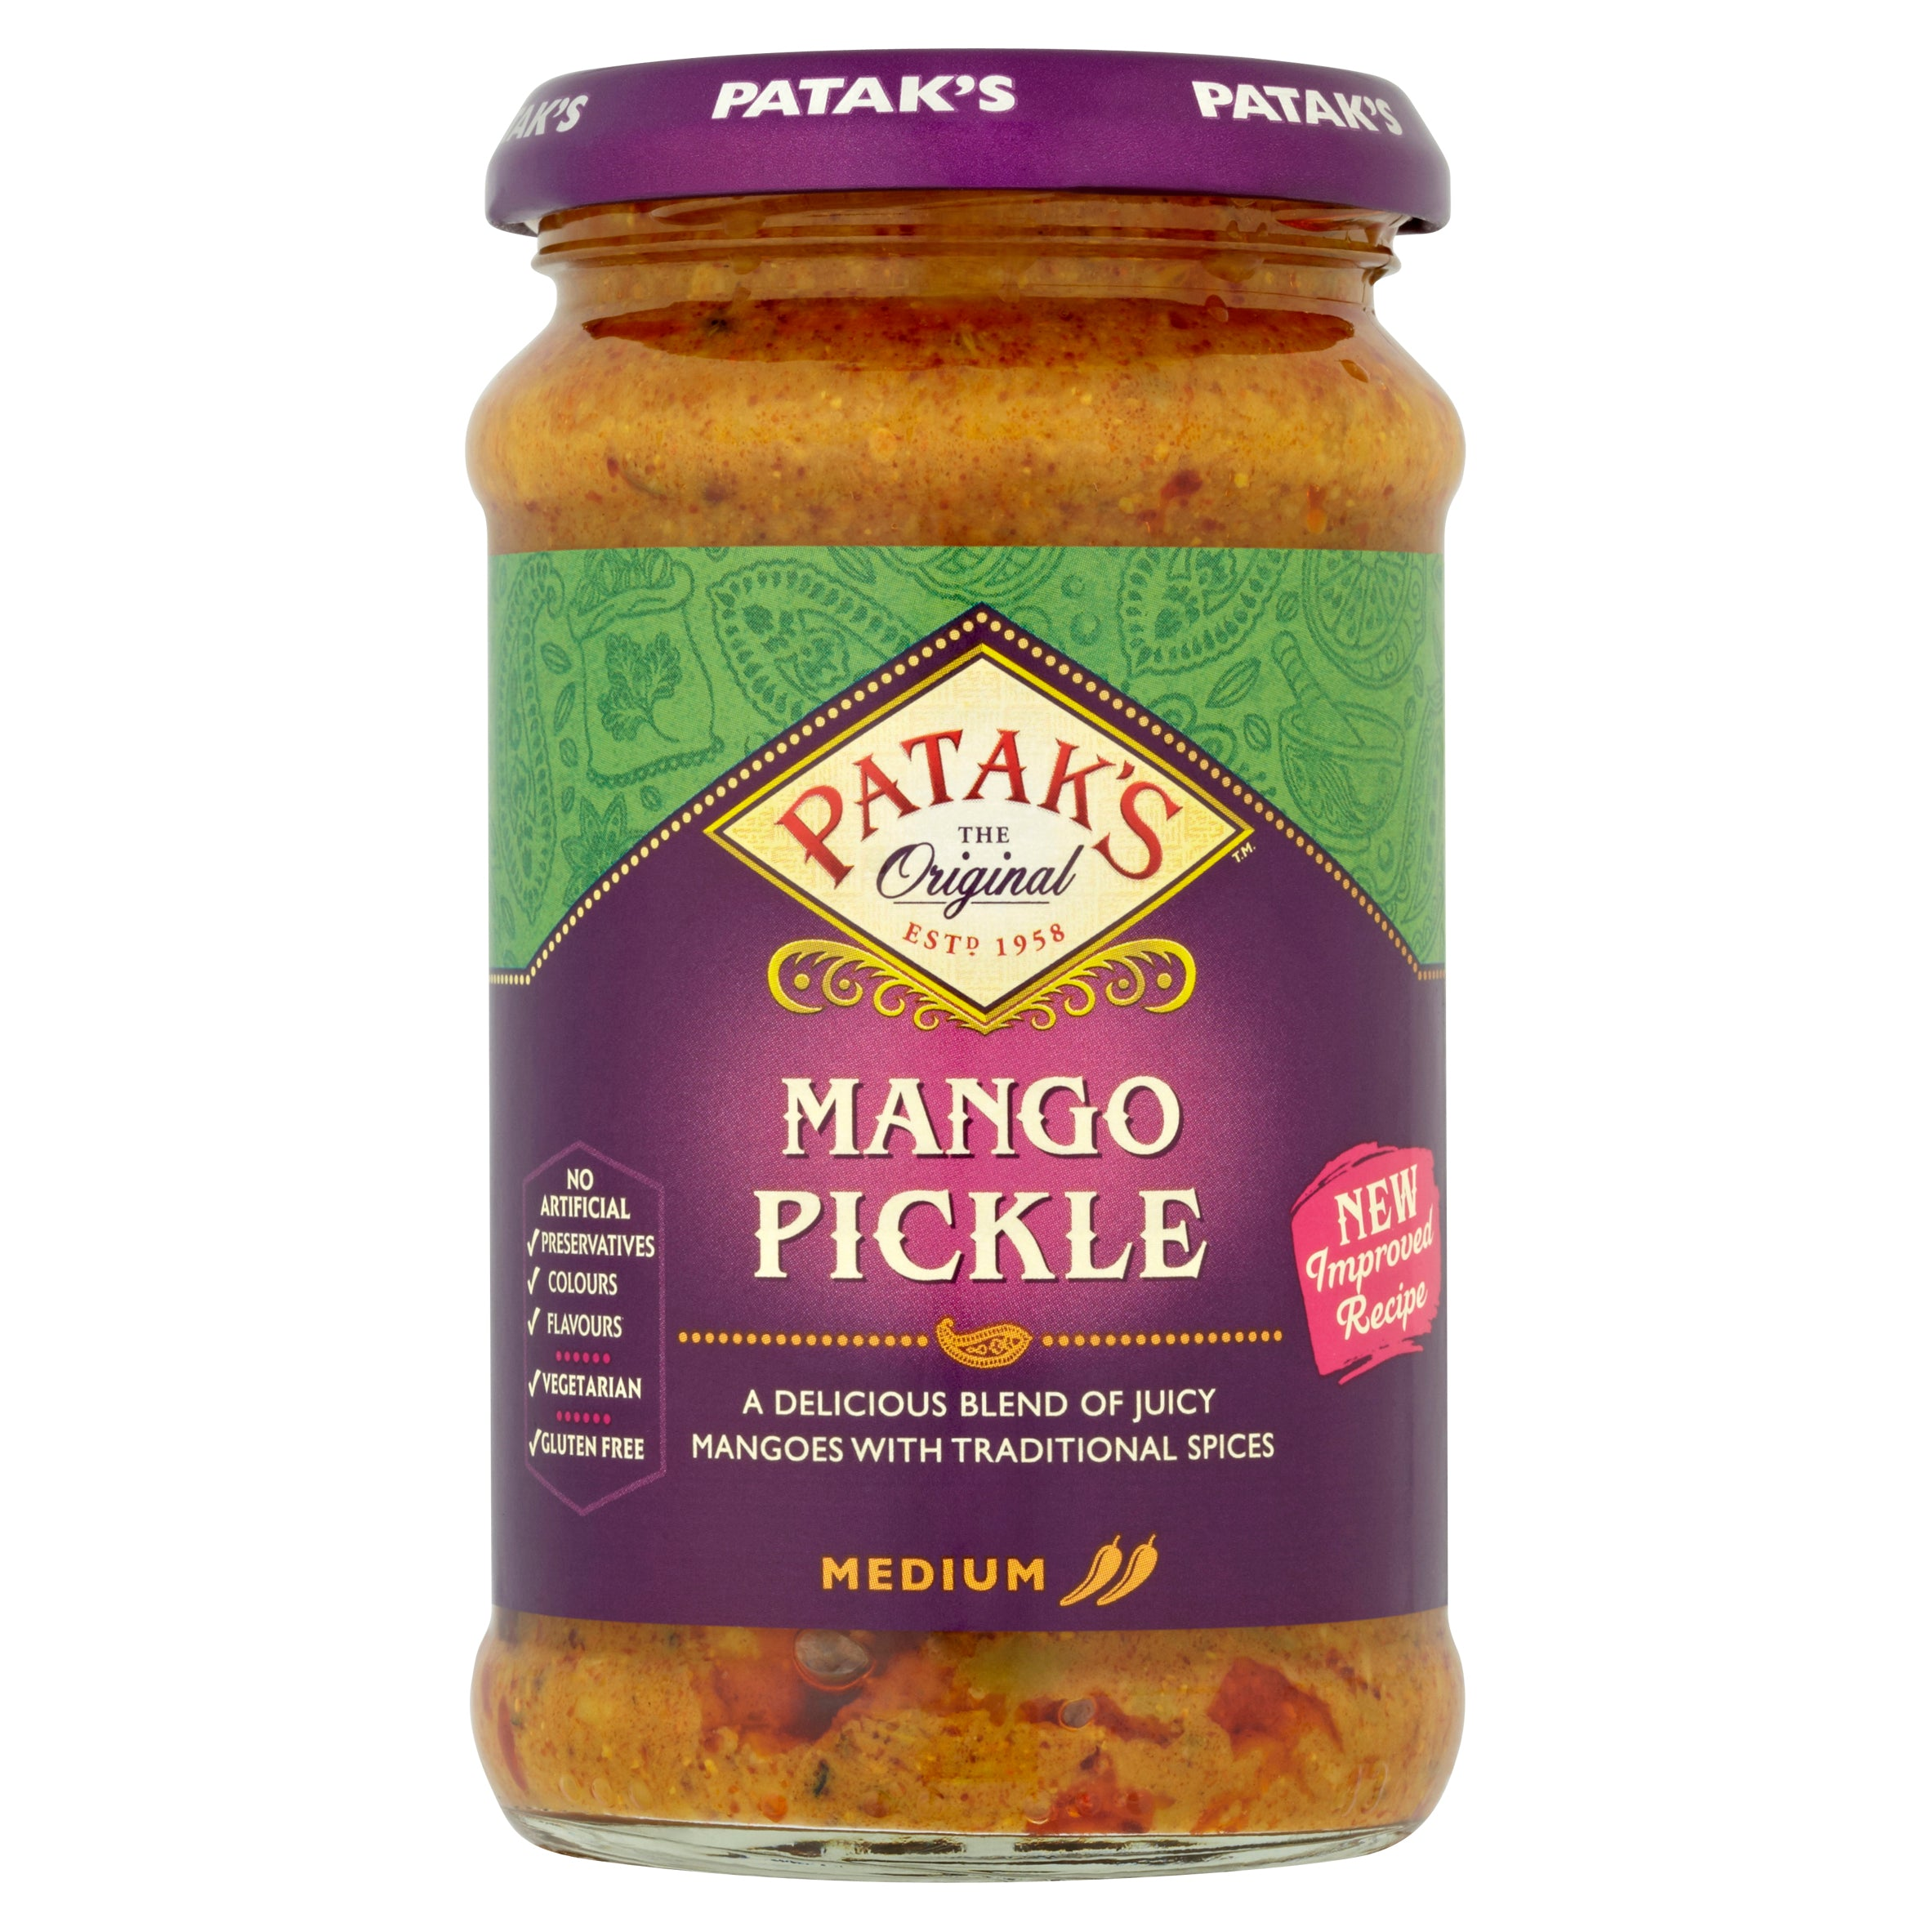 Mango Pickle (Medium) 283g by Patak's